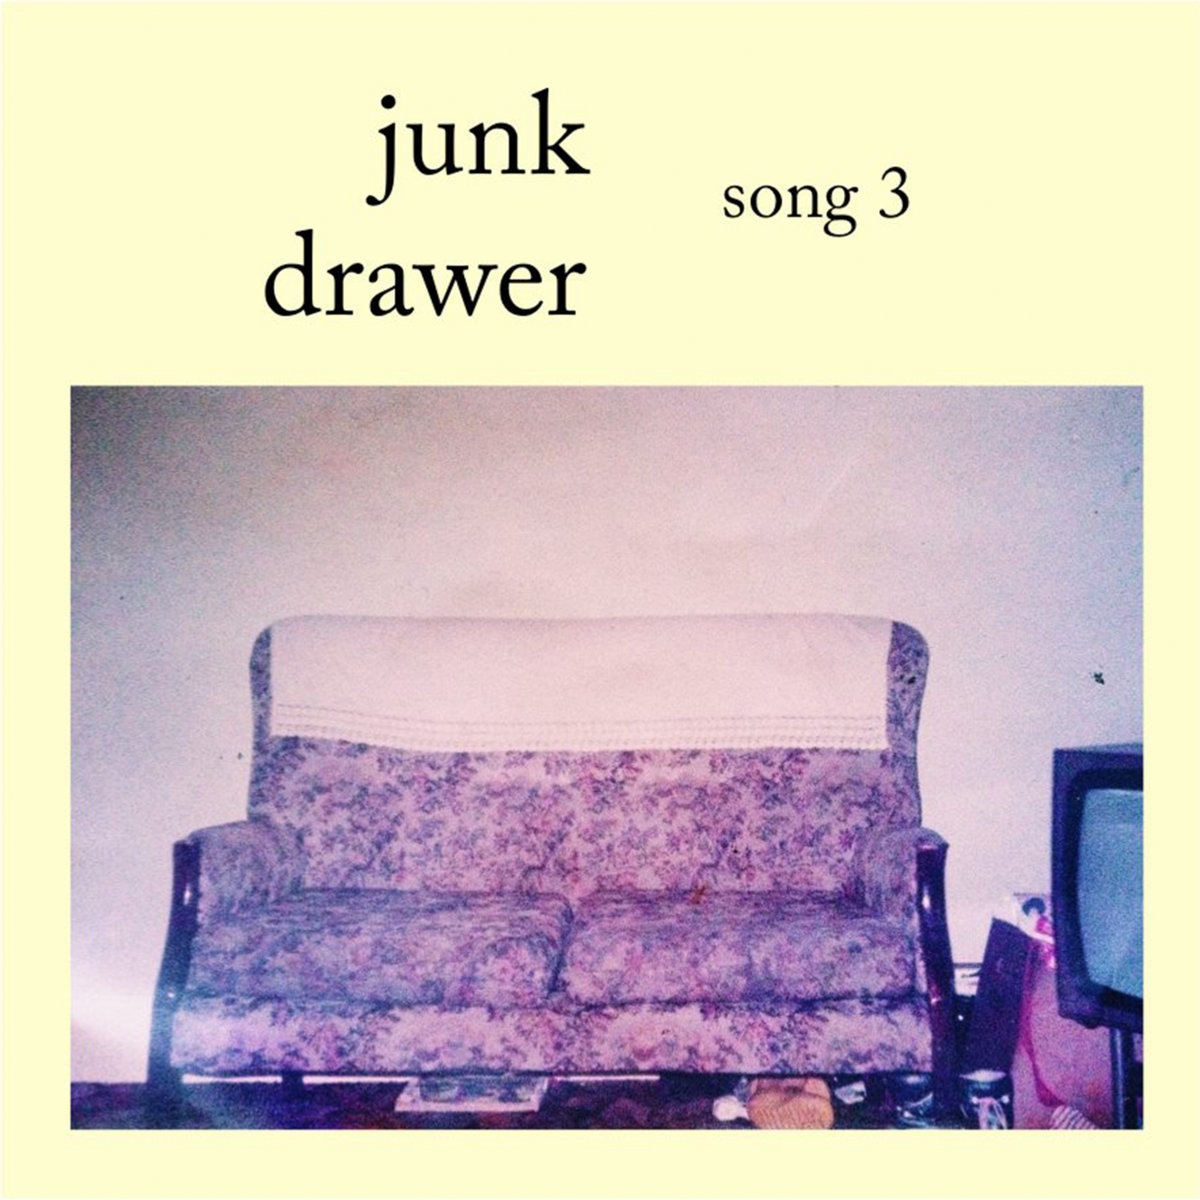 Sofa Easy Lyrics Song 3 Junk Drawer